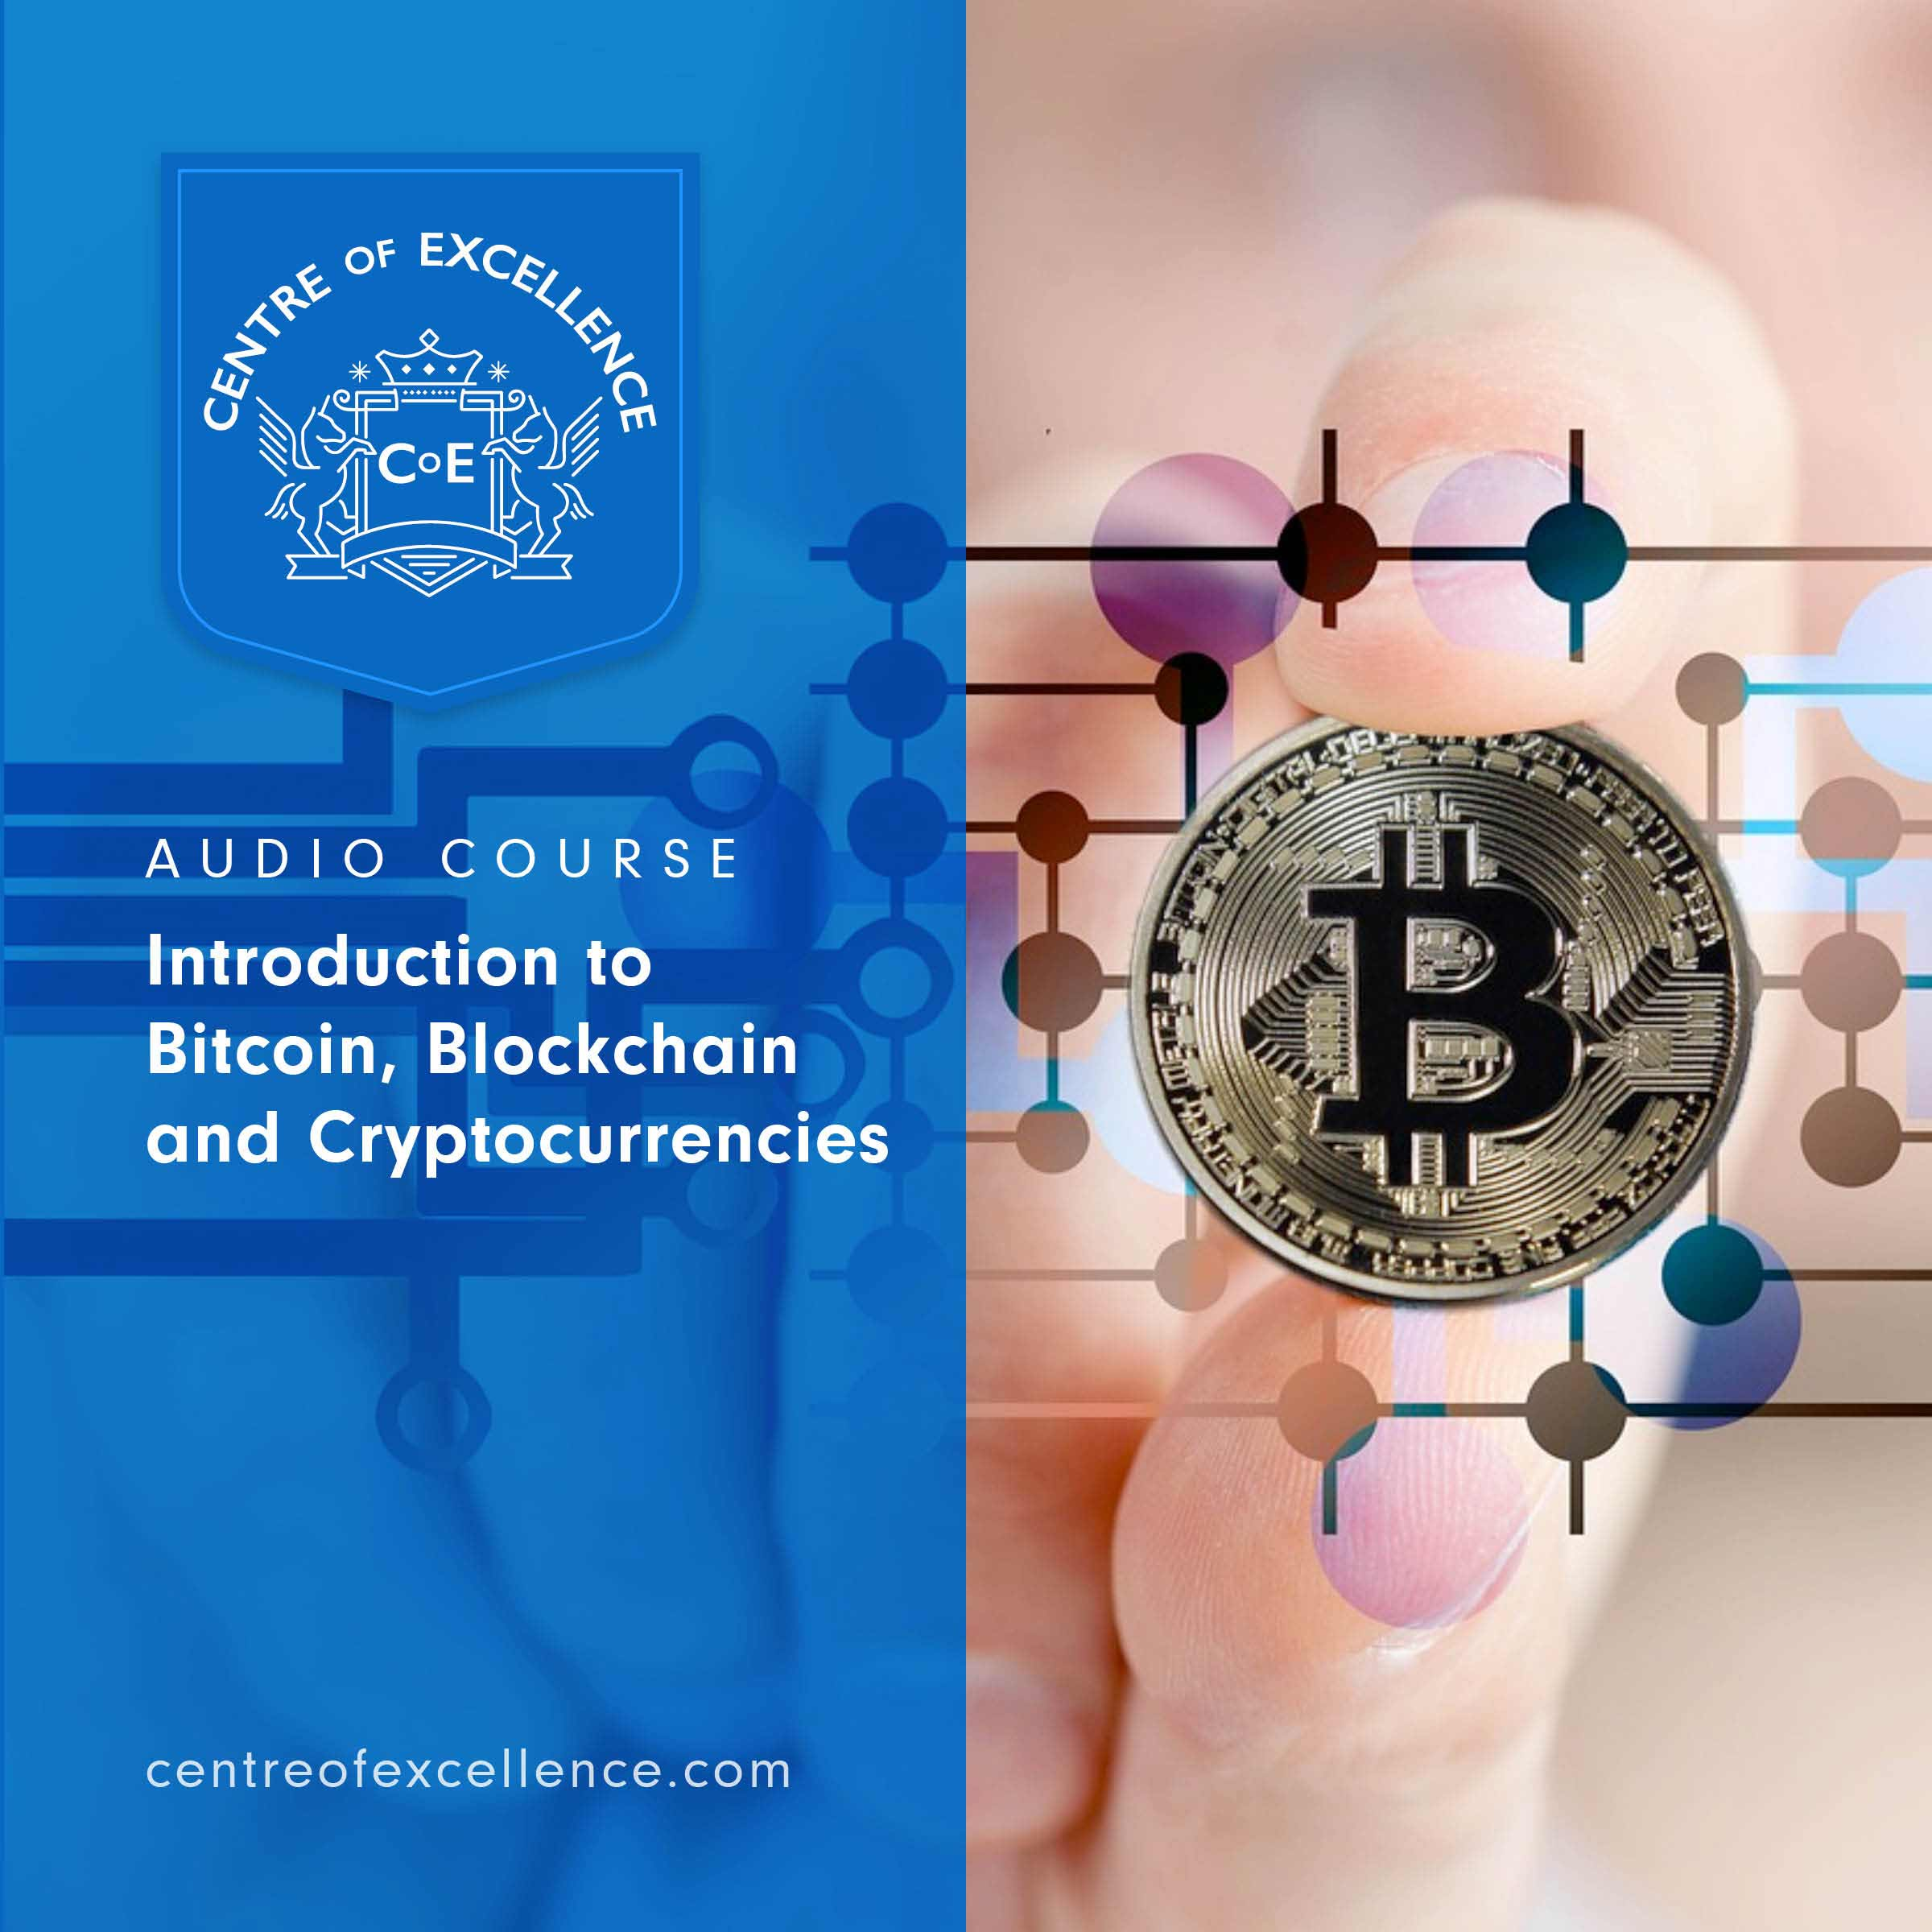 How do blockchain and cryptocurrencies relate